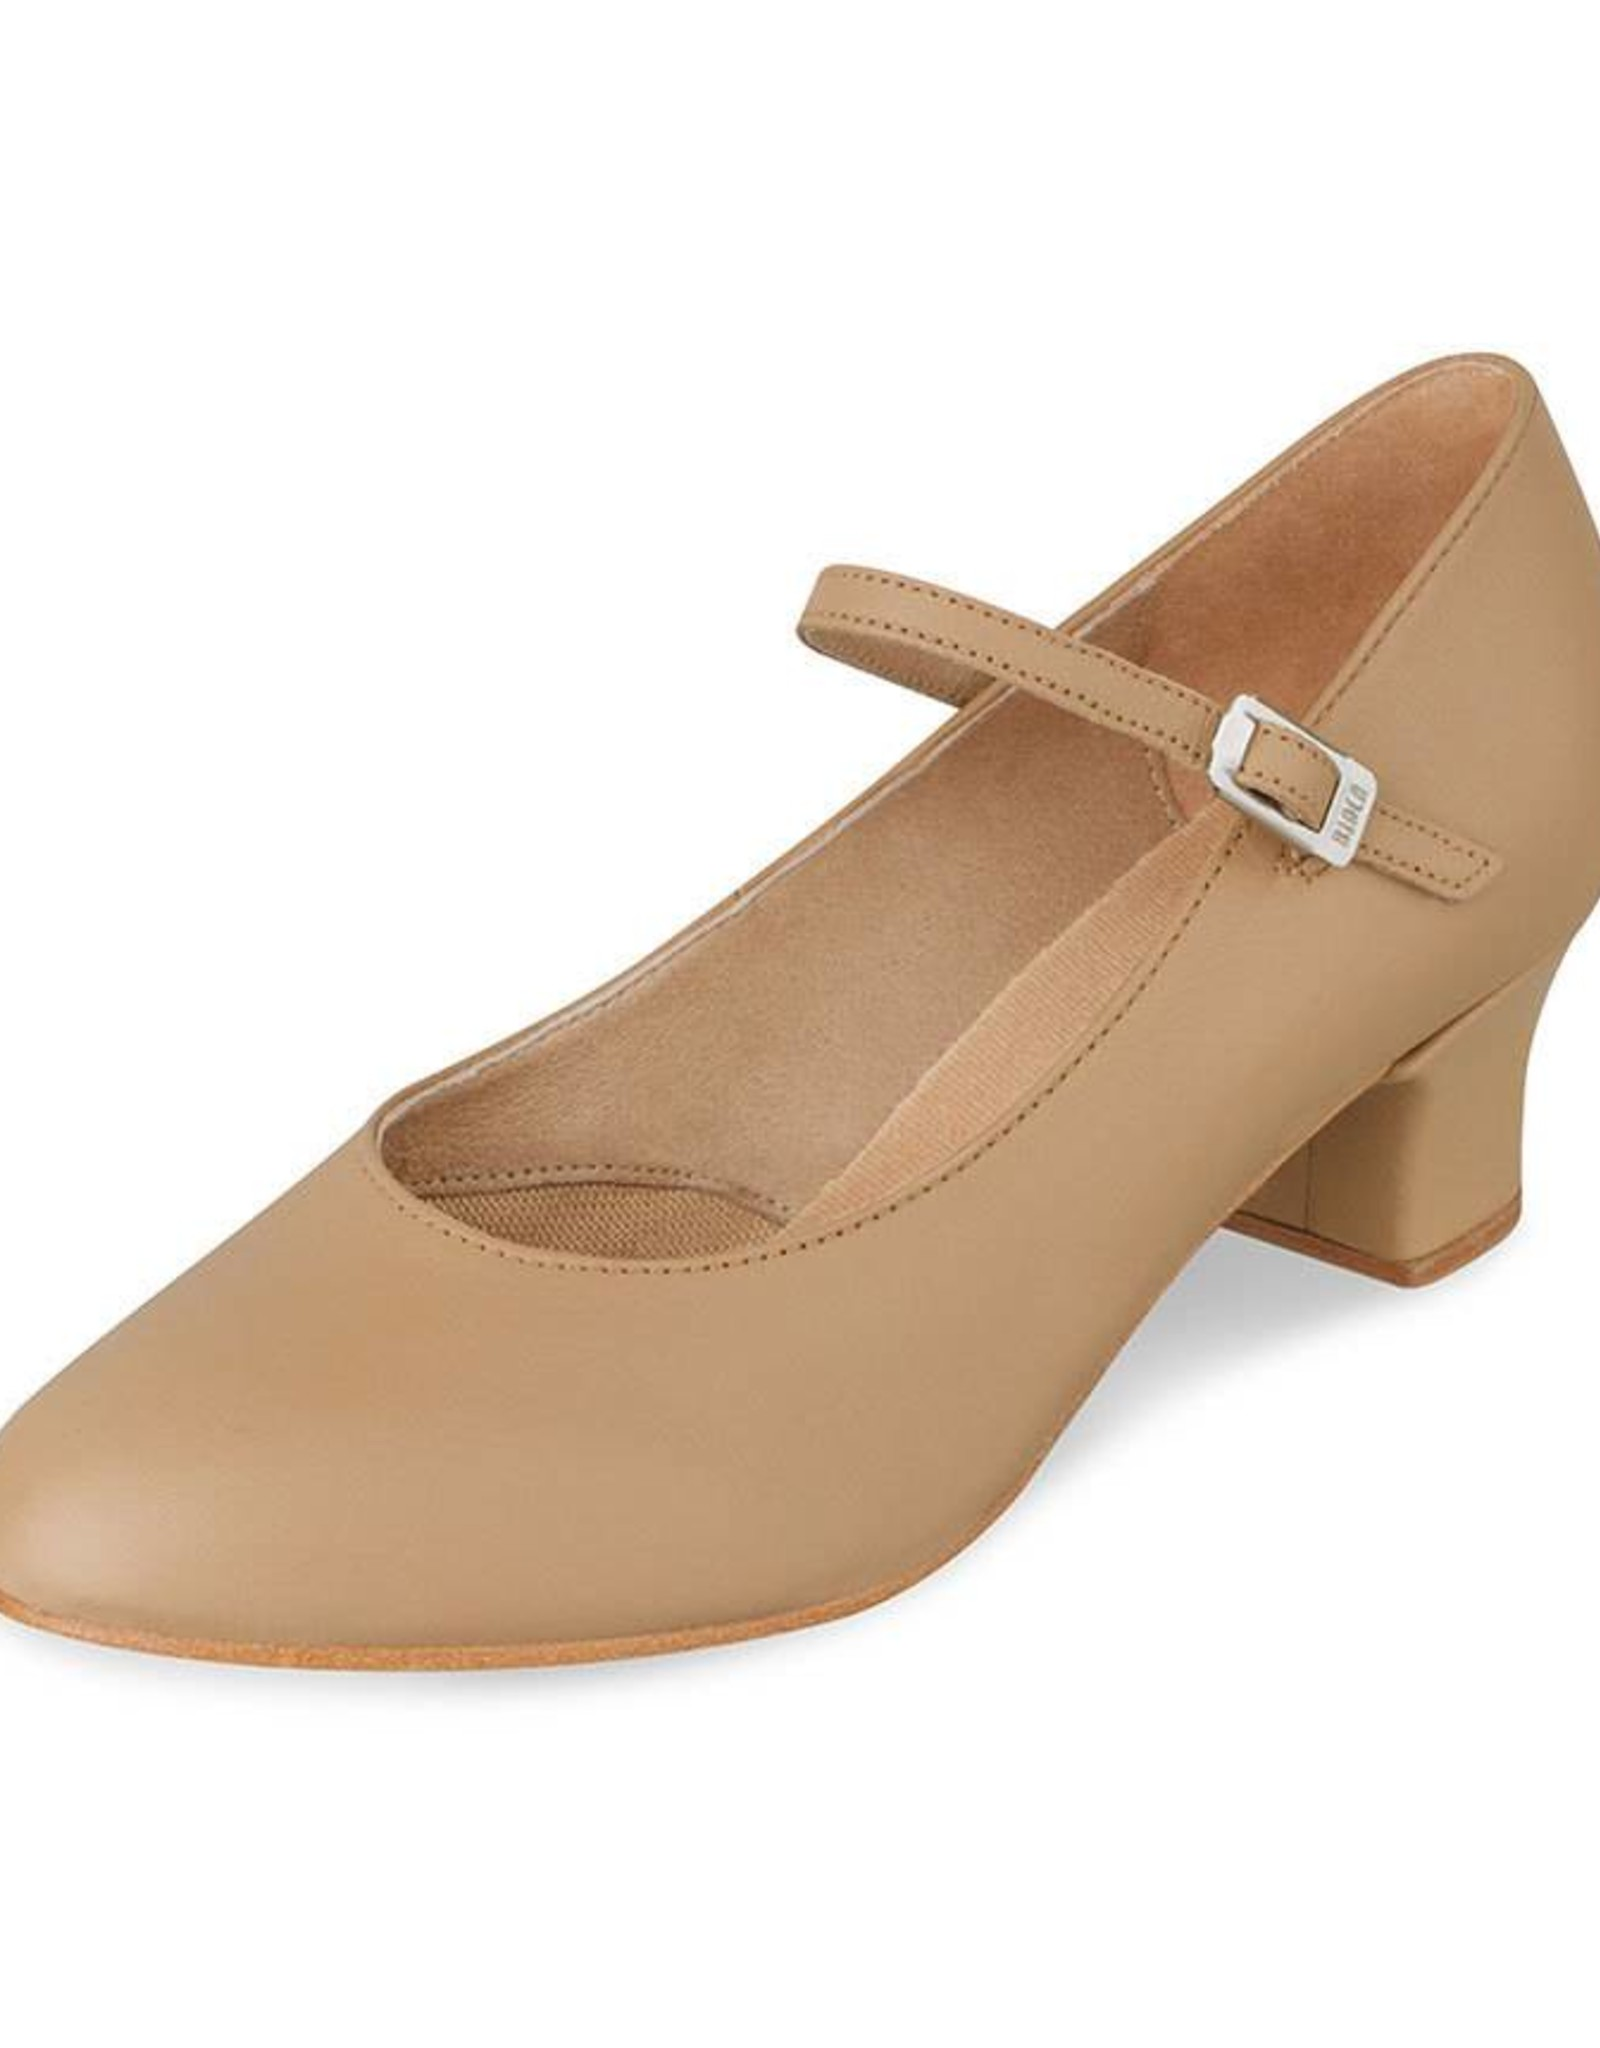 Bloch S0304L Curtain Call Character Shoe